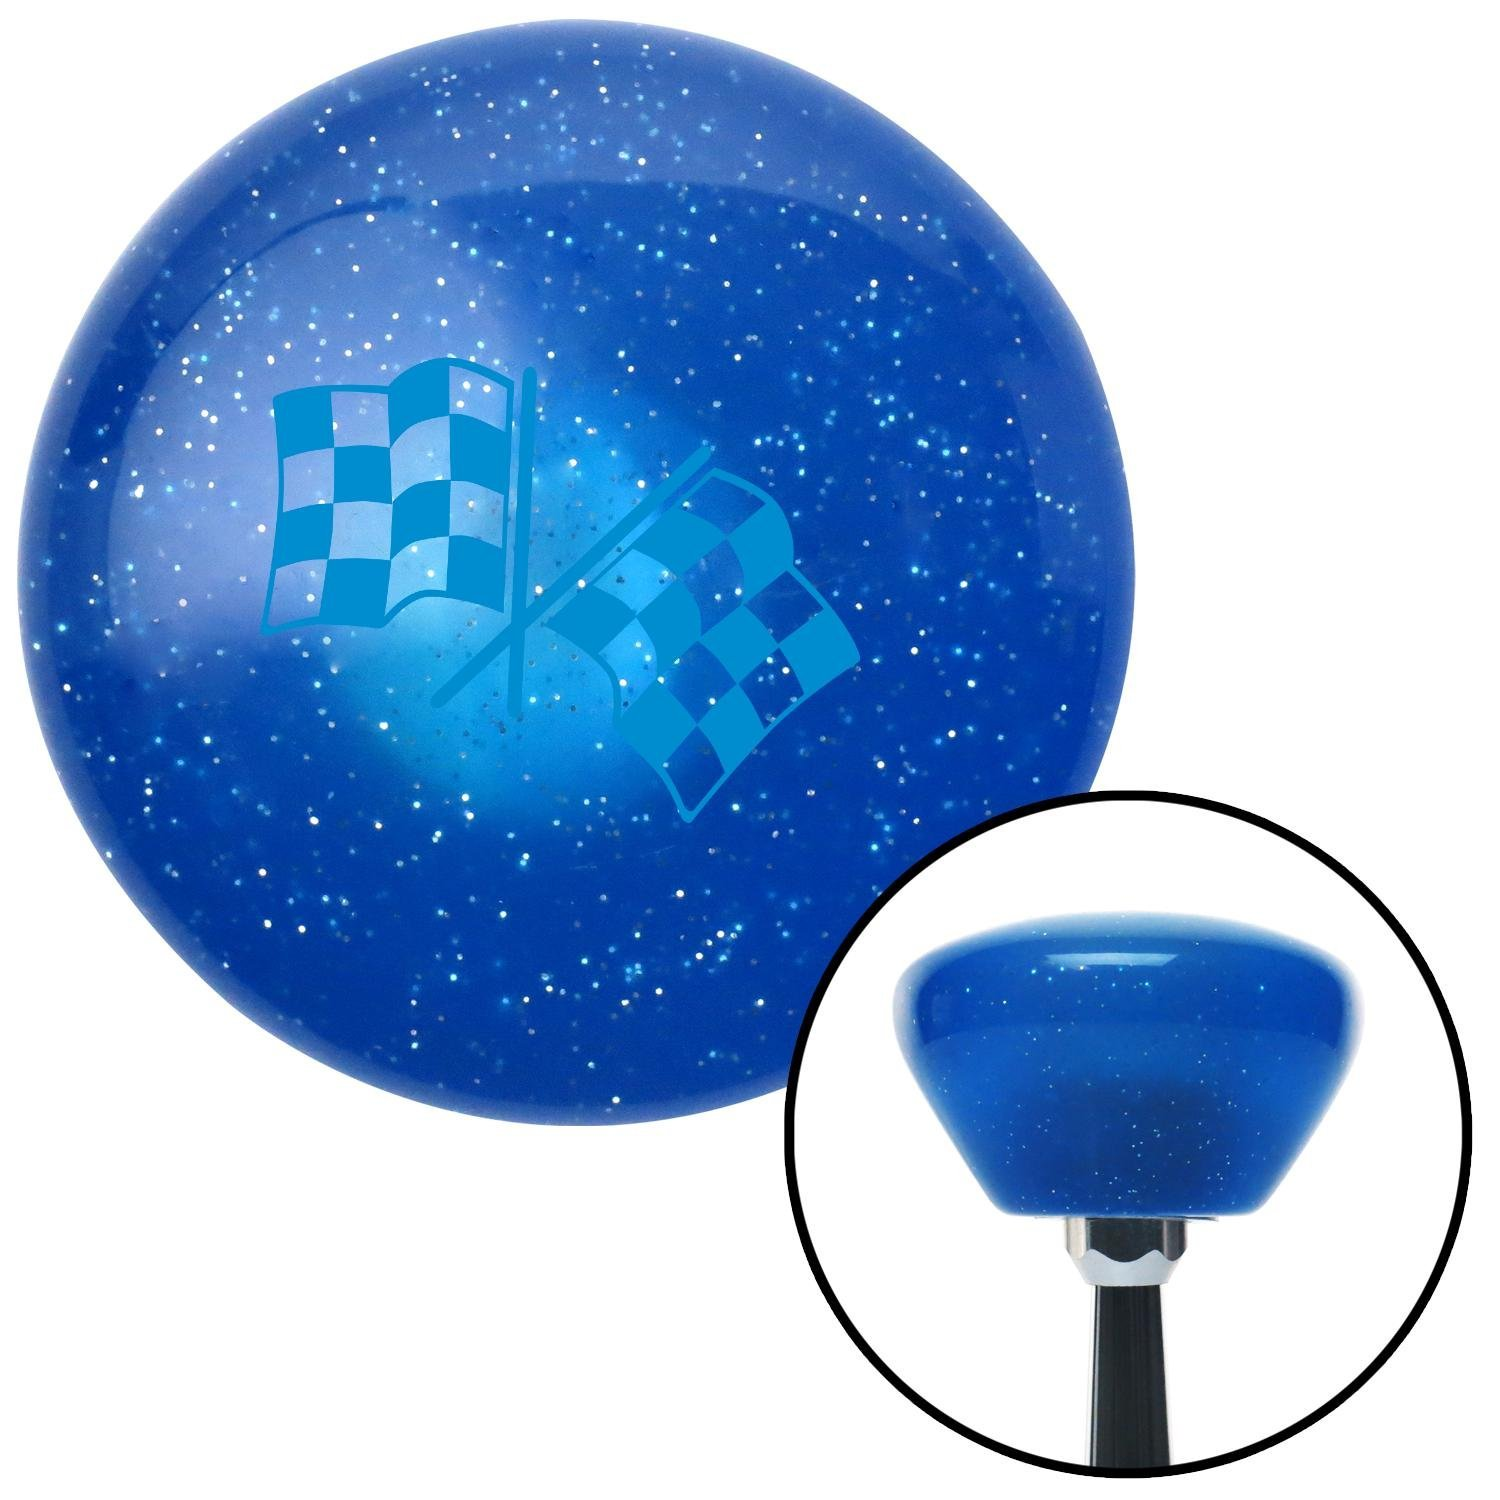 Blue 2 Checkered Race Flags American Shifter 188563 Blue Retro Metal Flake Shift Knob with M16 x 1.5 Insert